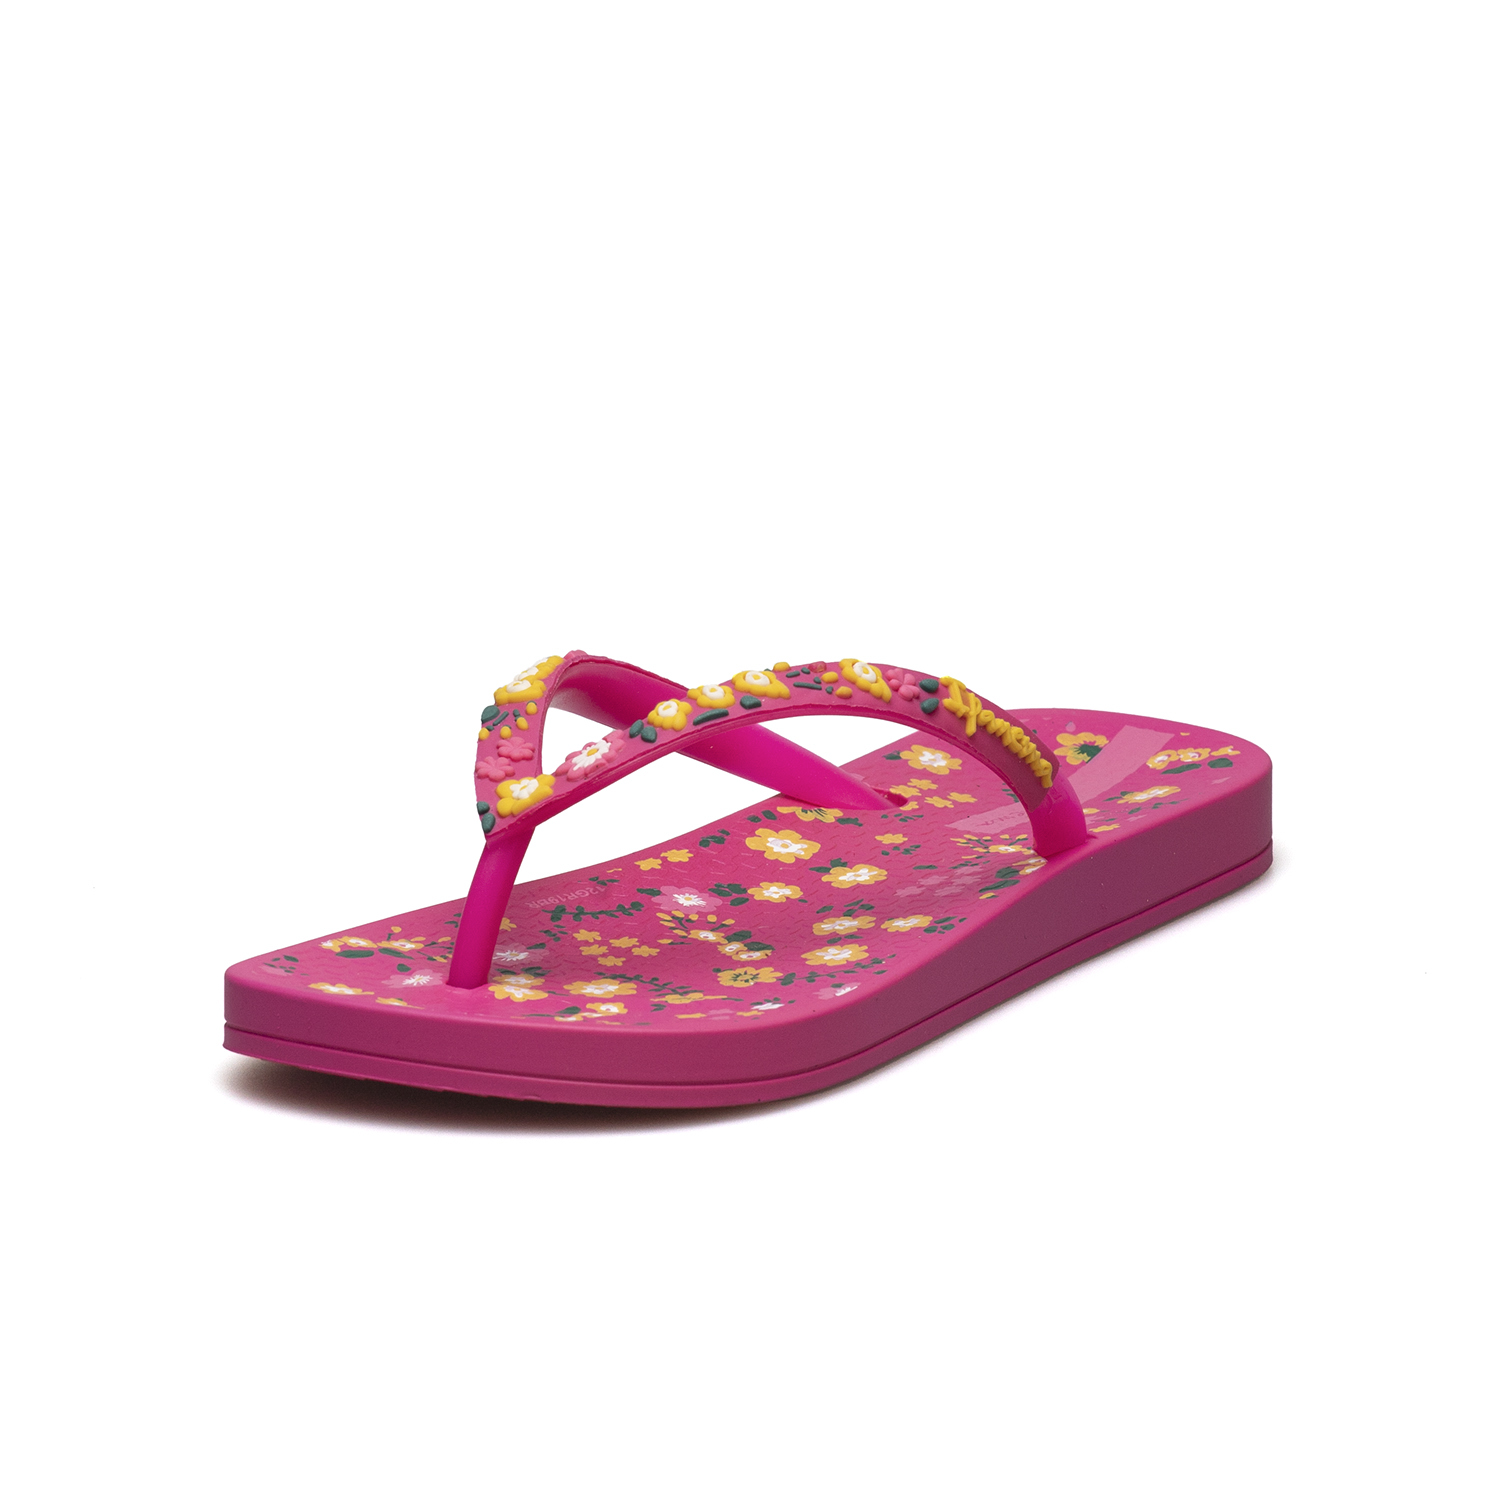 IPANEMA ANATOMIC KID FUXIA